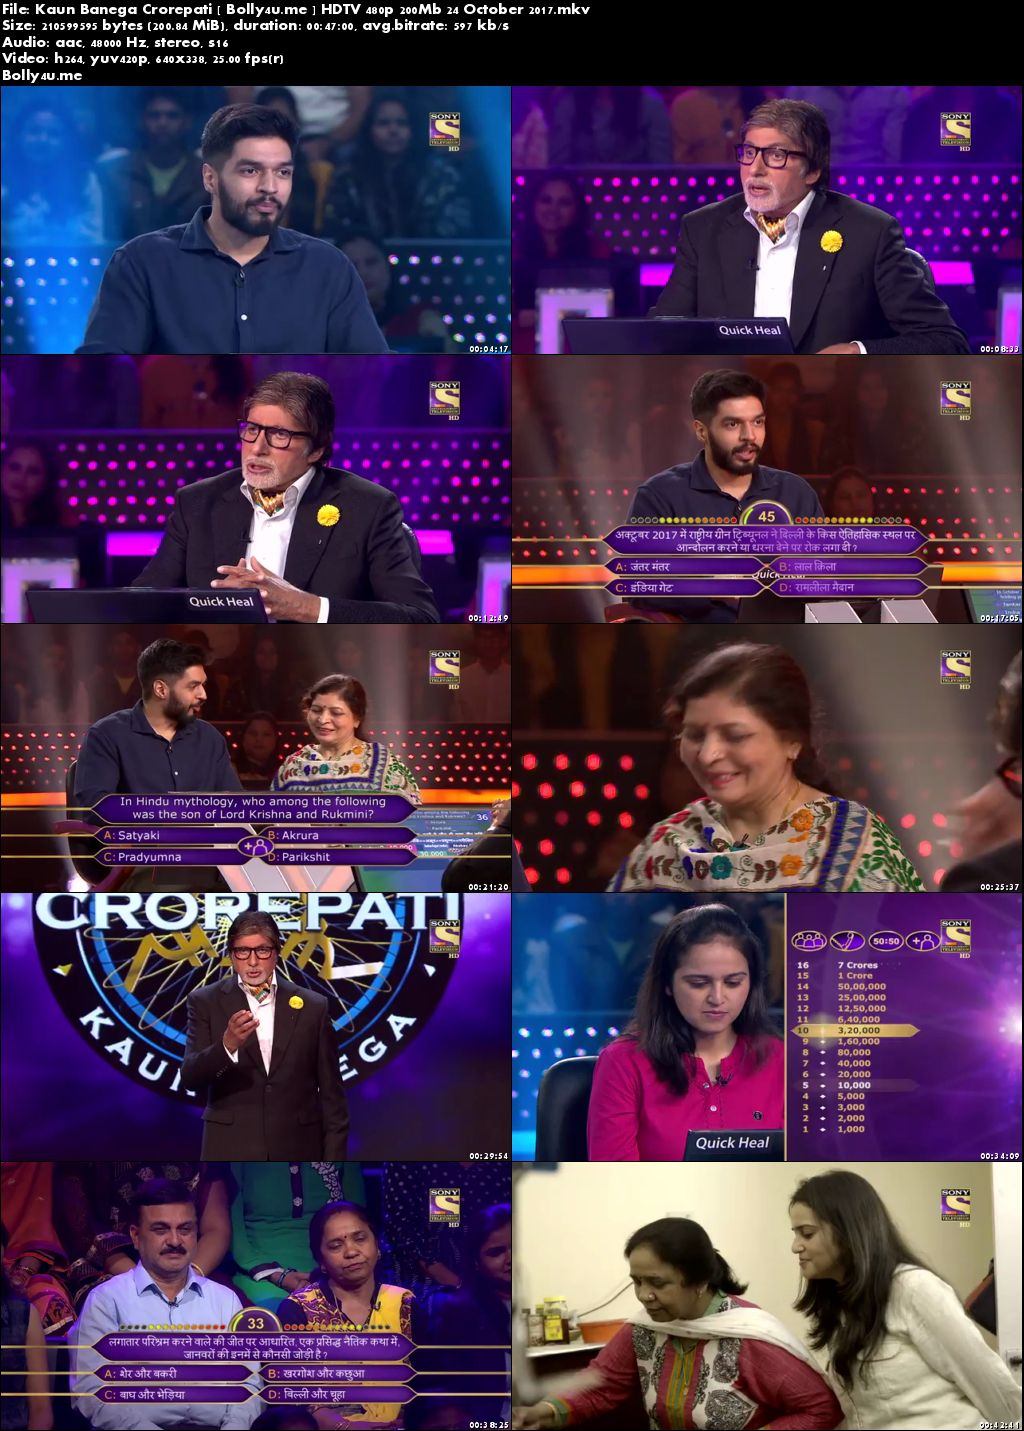 Kaun Banega Crorepati HDTV 480p 200MB 24 October 2017 Download